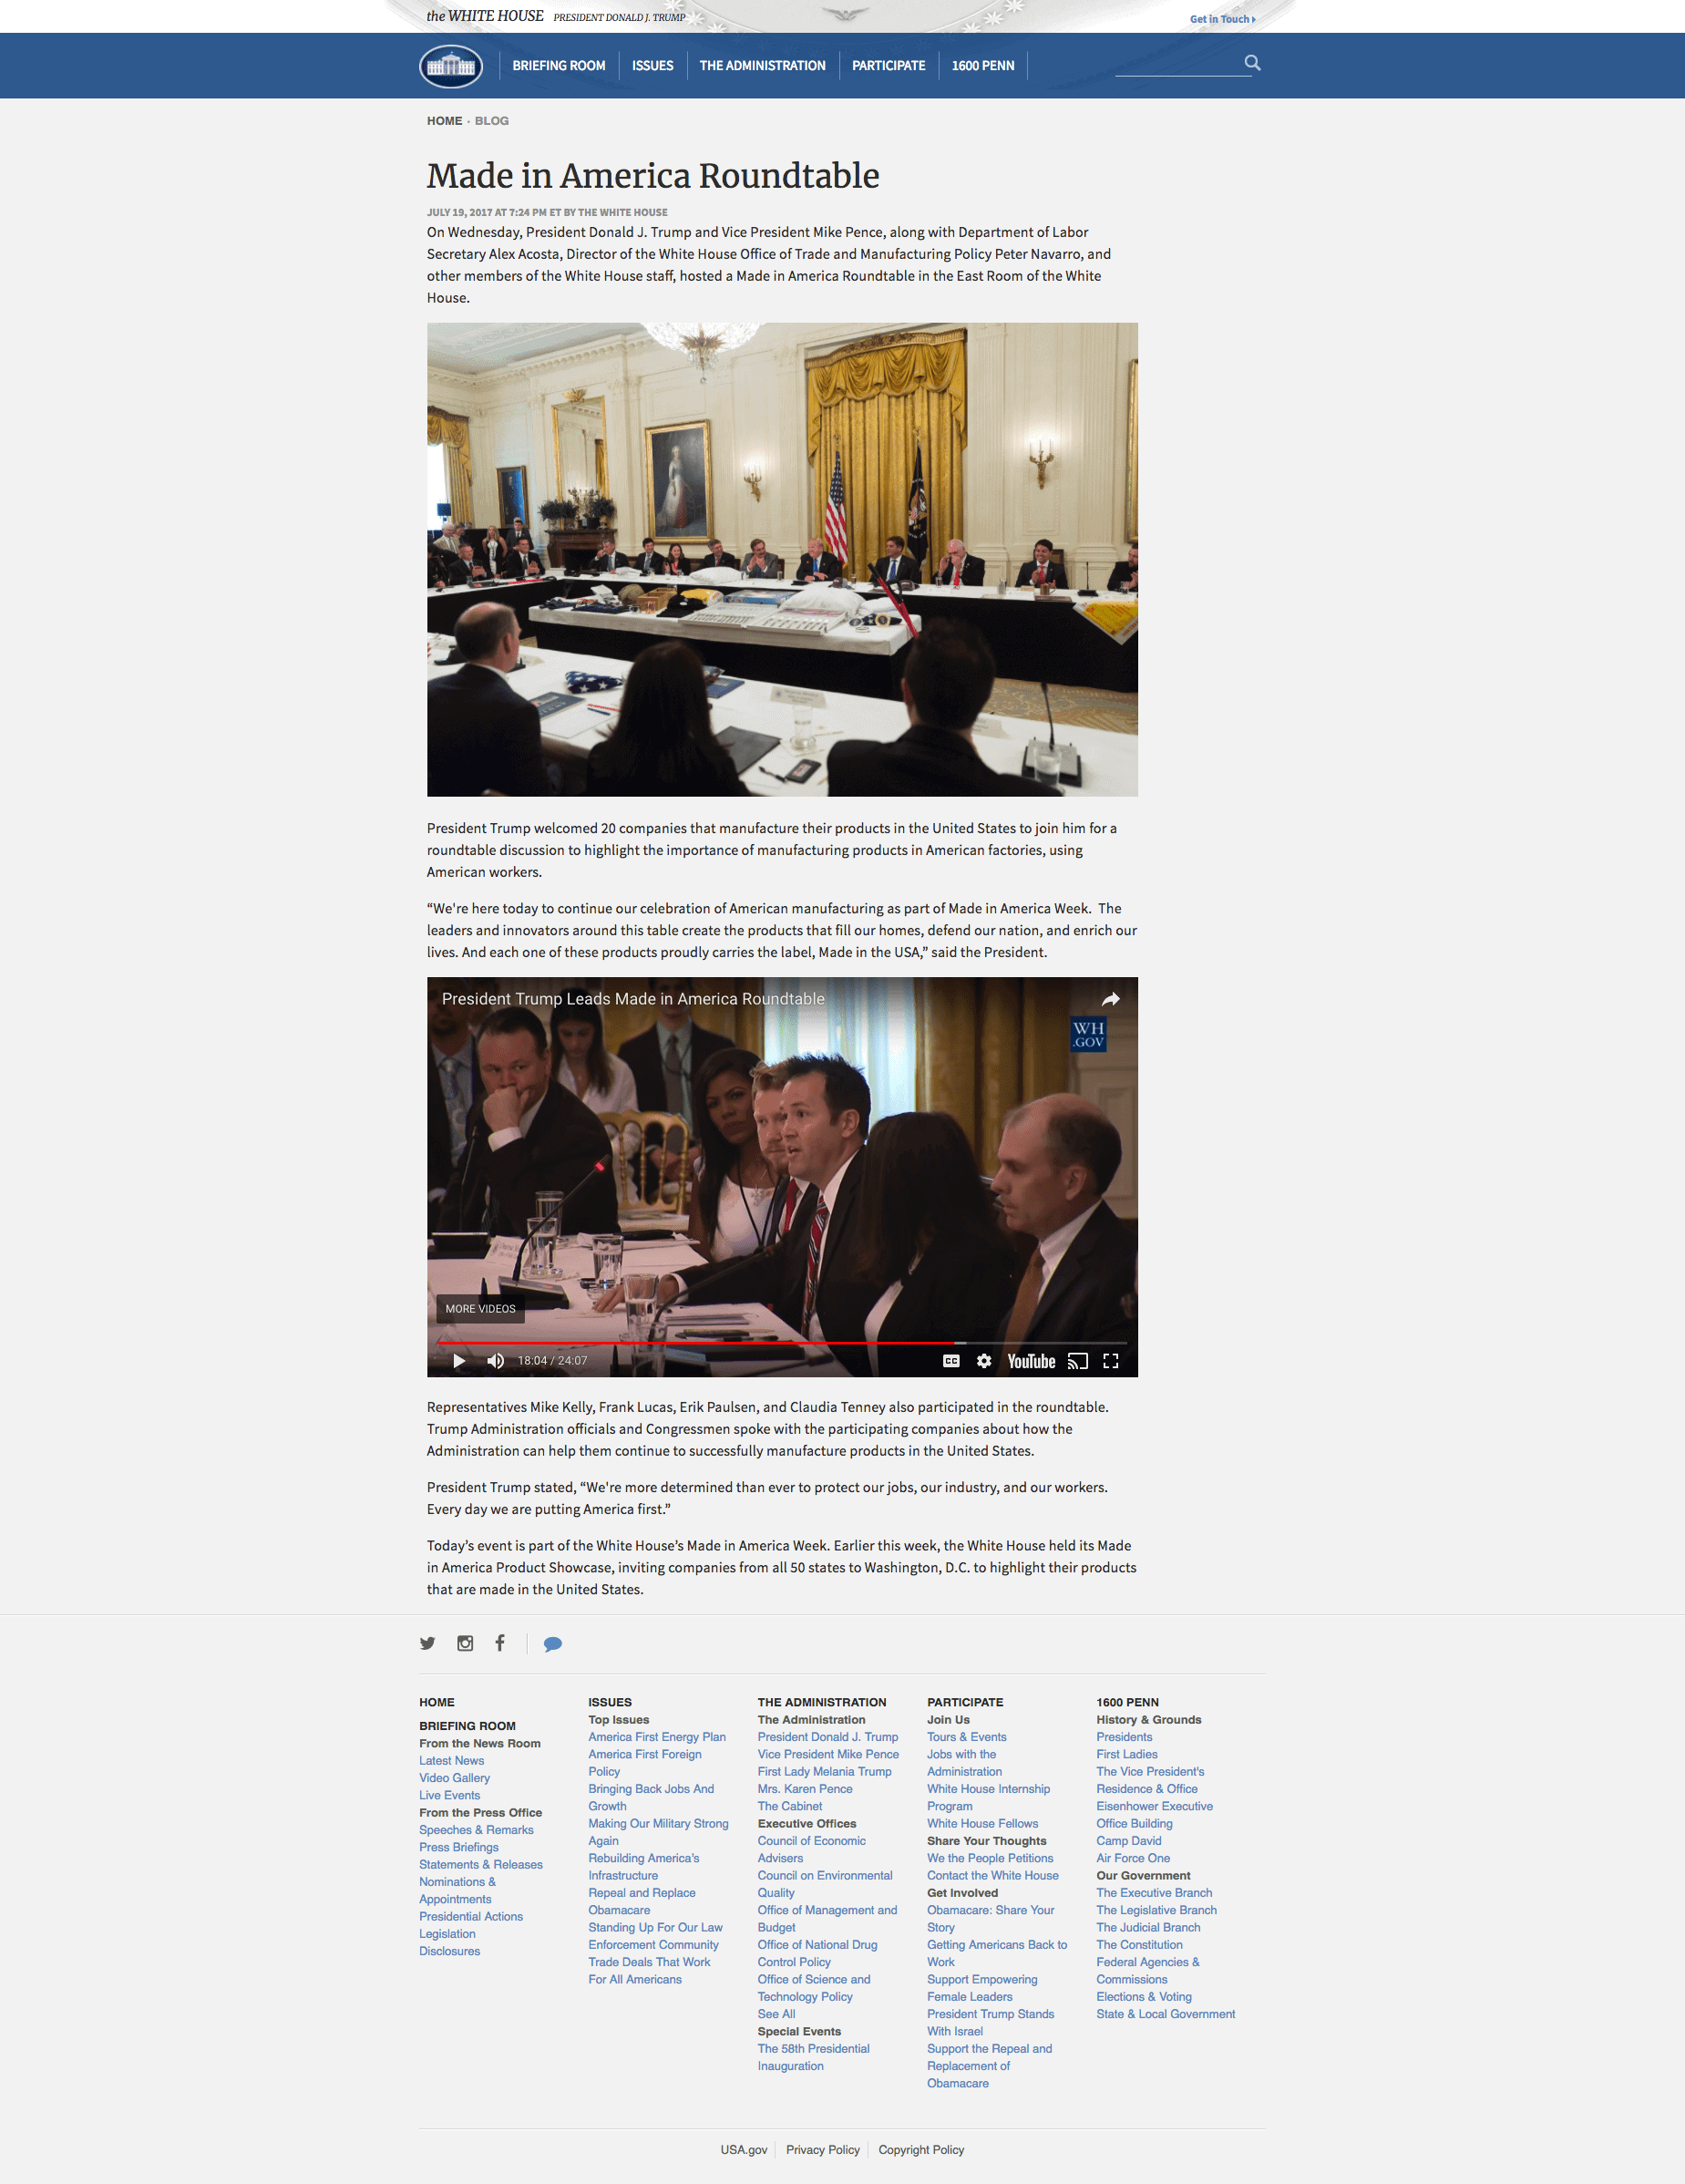 White House Article on Made in America Roundtable with Margarita Mendoza and Kurt Uhlir